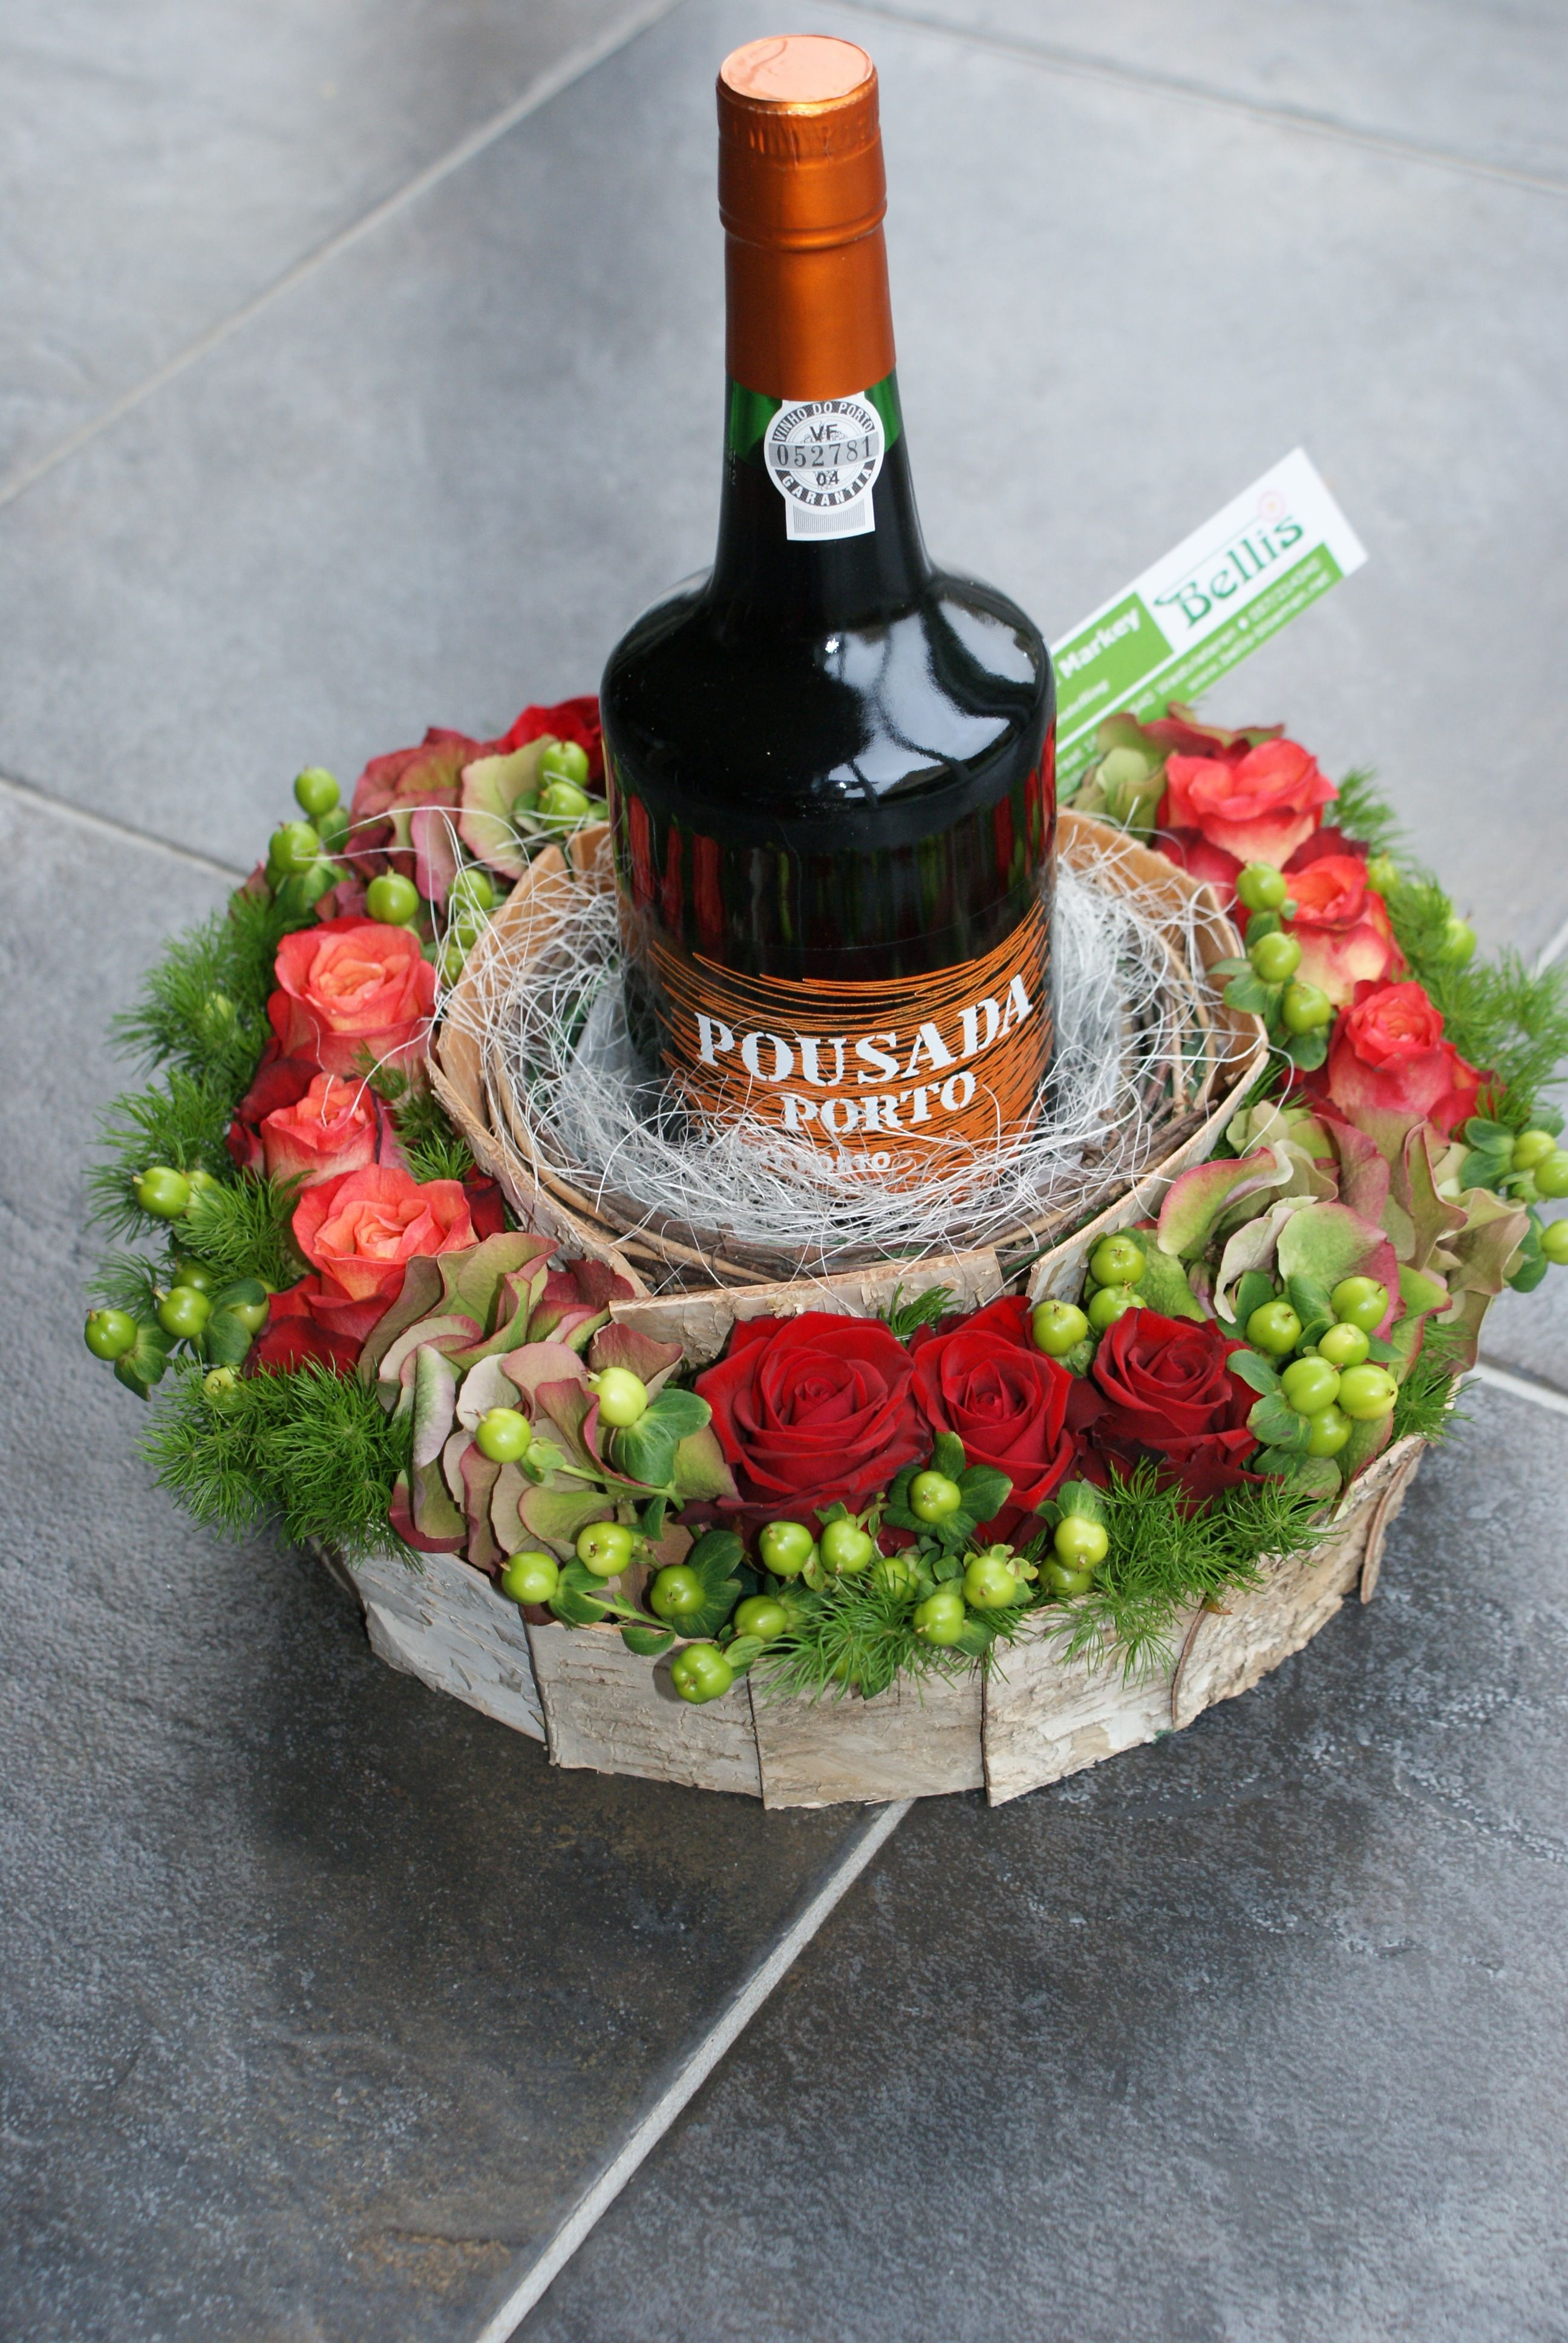 Combine your table wine and centerpiece into one great for smaller